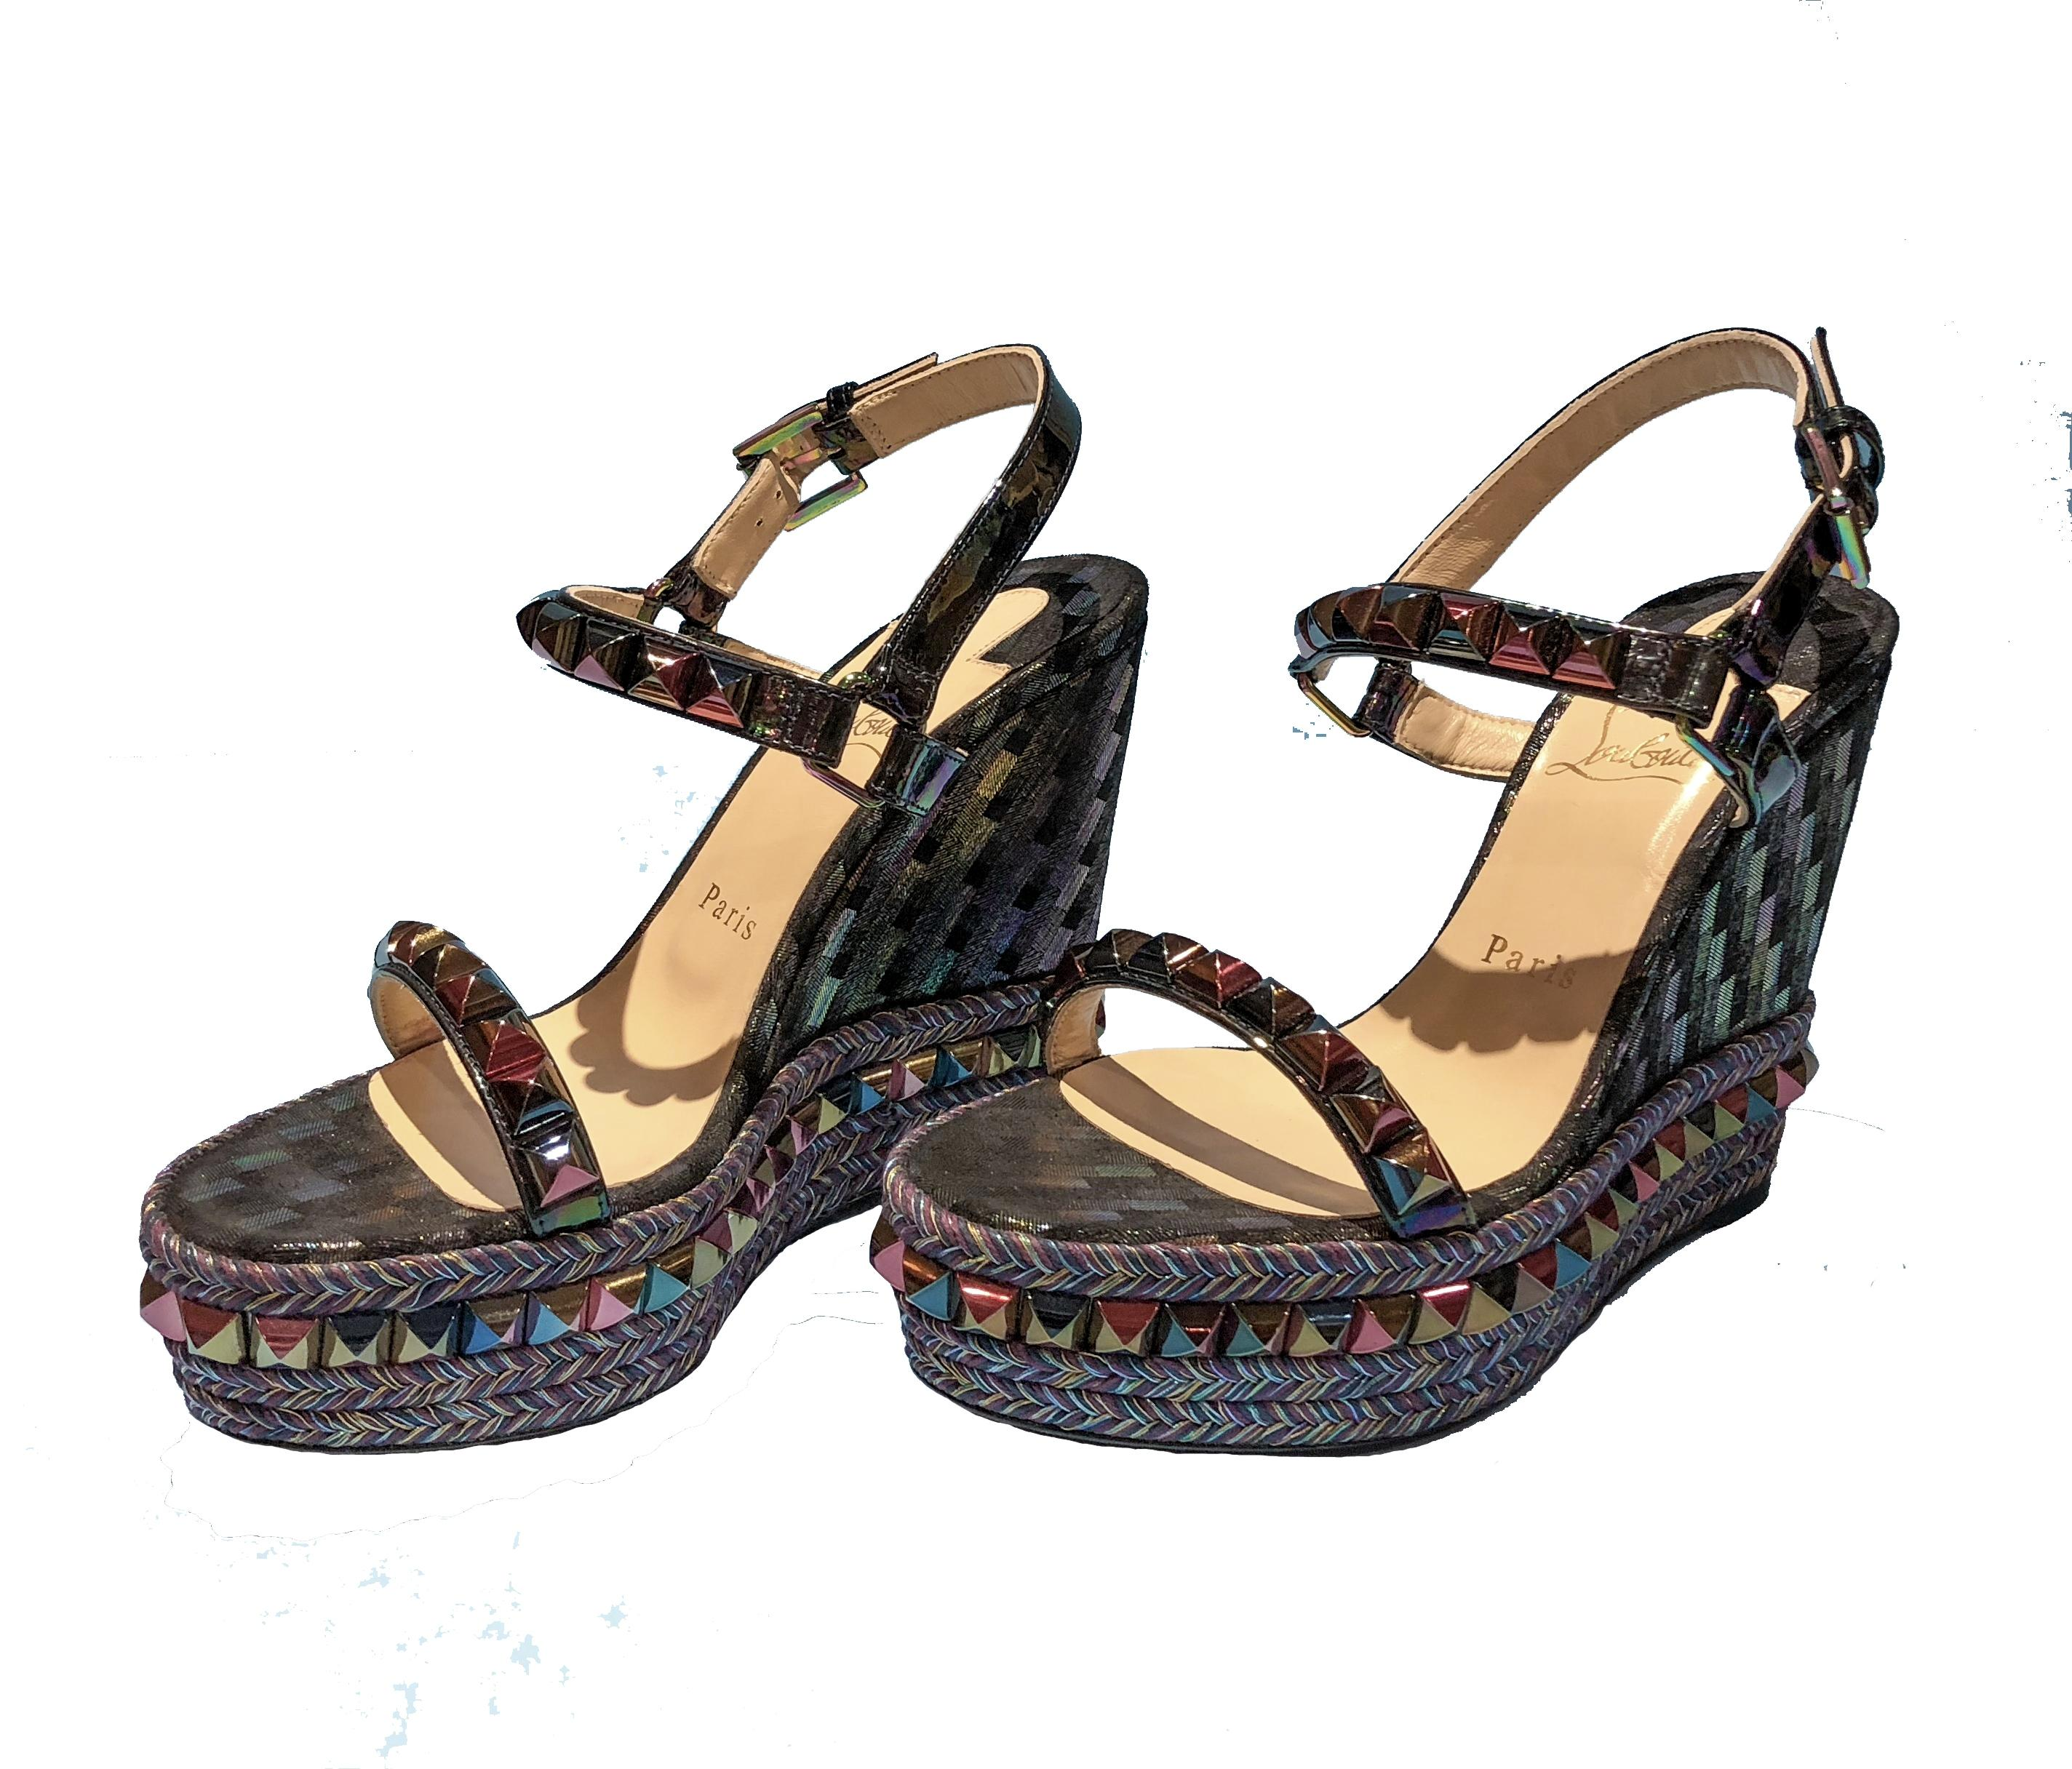 29e556b22237 ... Christian Louboutin Louboutin Louboutin Black Multi Cataclou Studded  Printed 120mm Wedge Red Sole Sandals Size EU ...